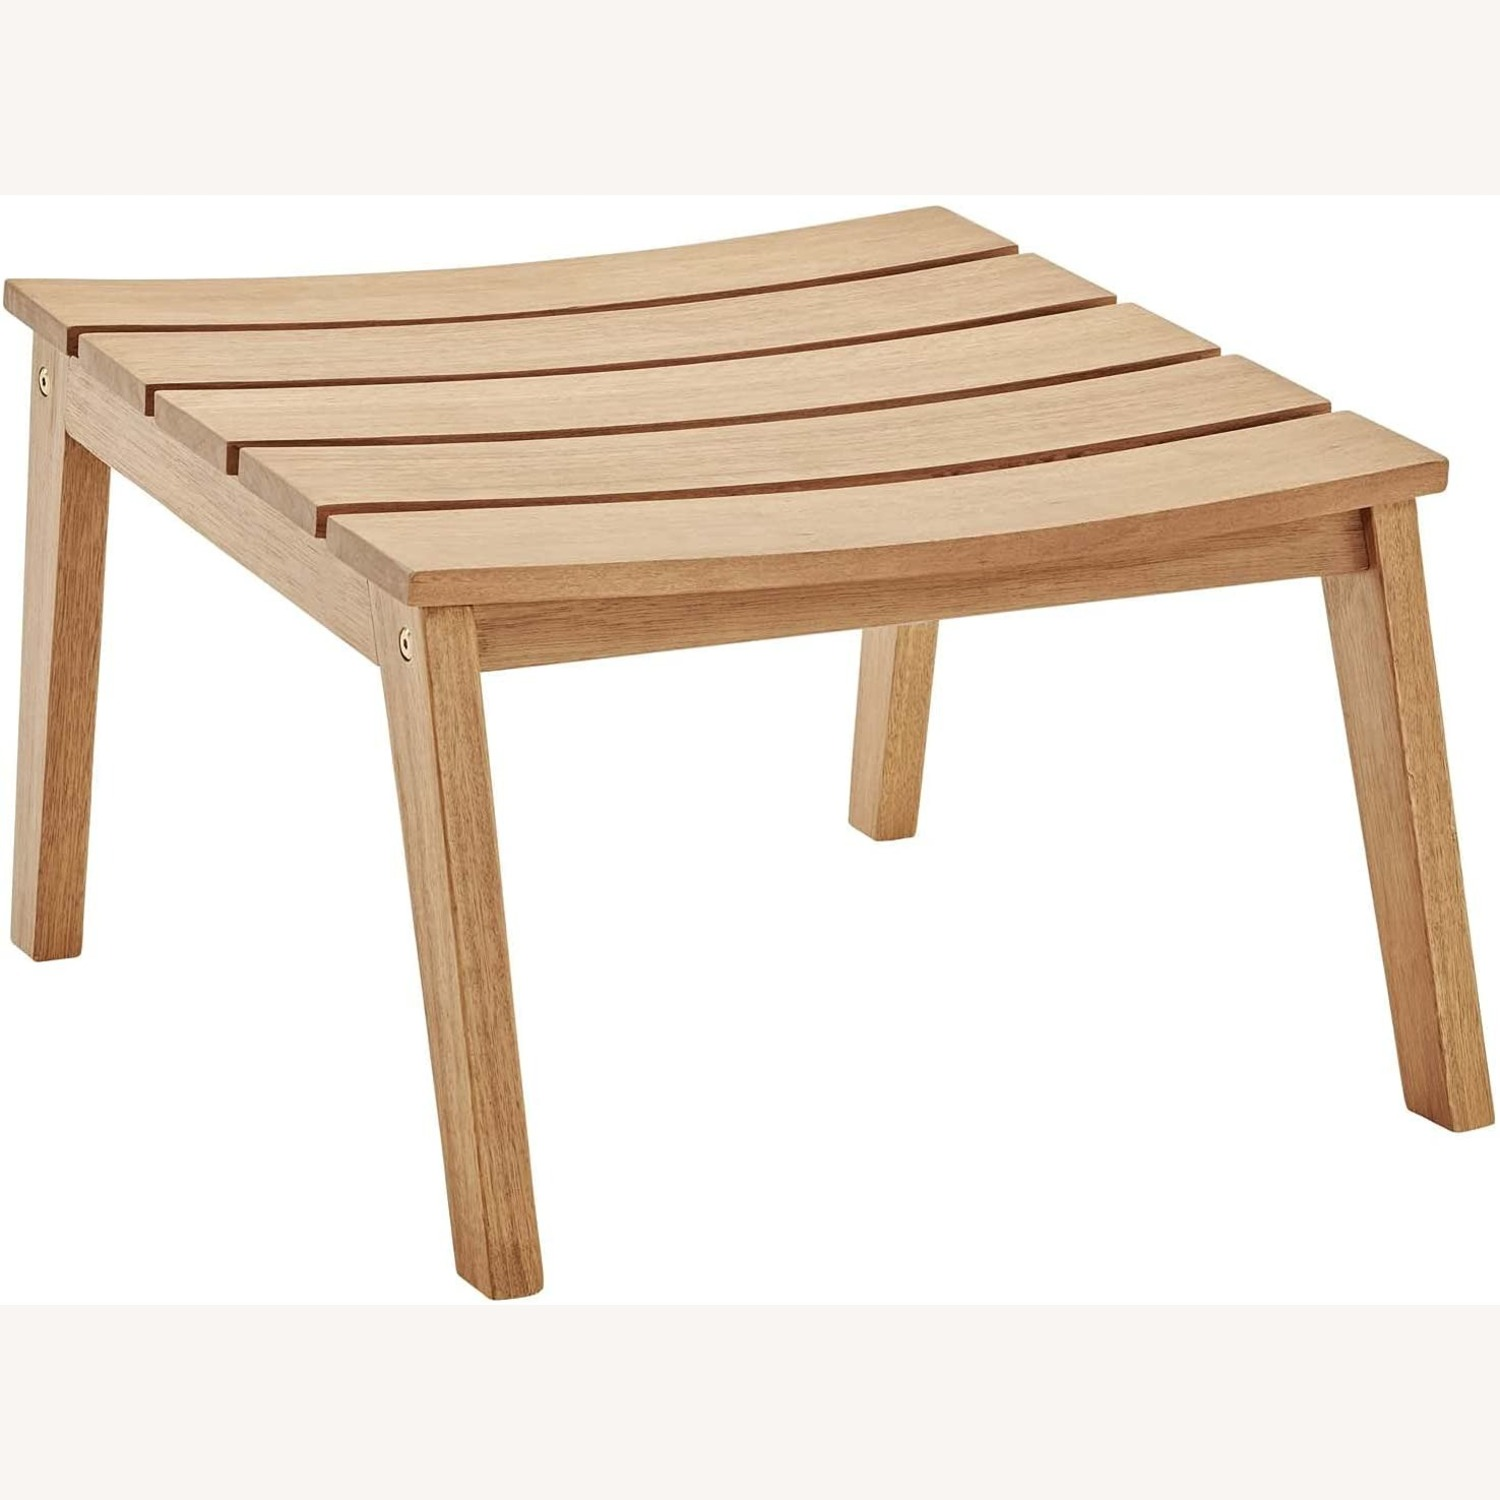 4-Piece Outdoor Patio Set In Natural Taupe Wood - image-4